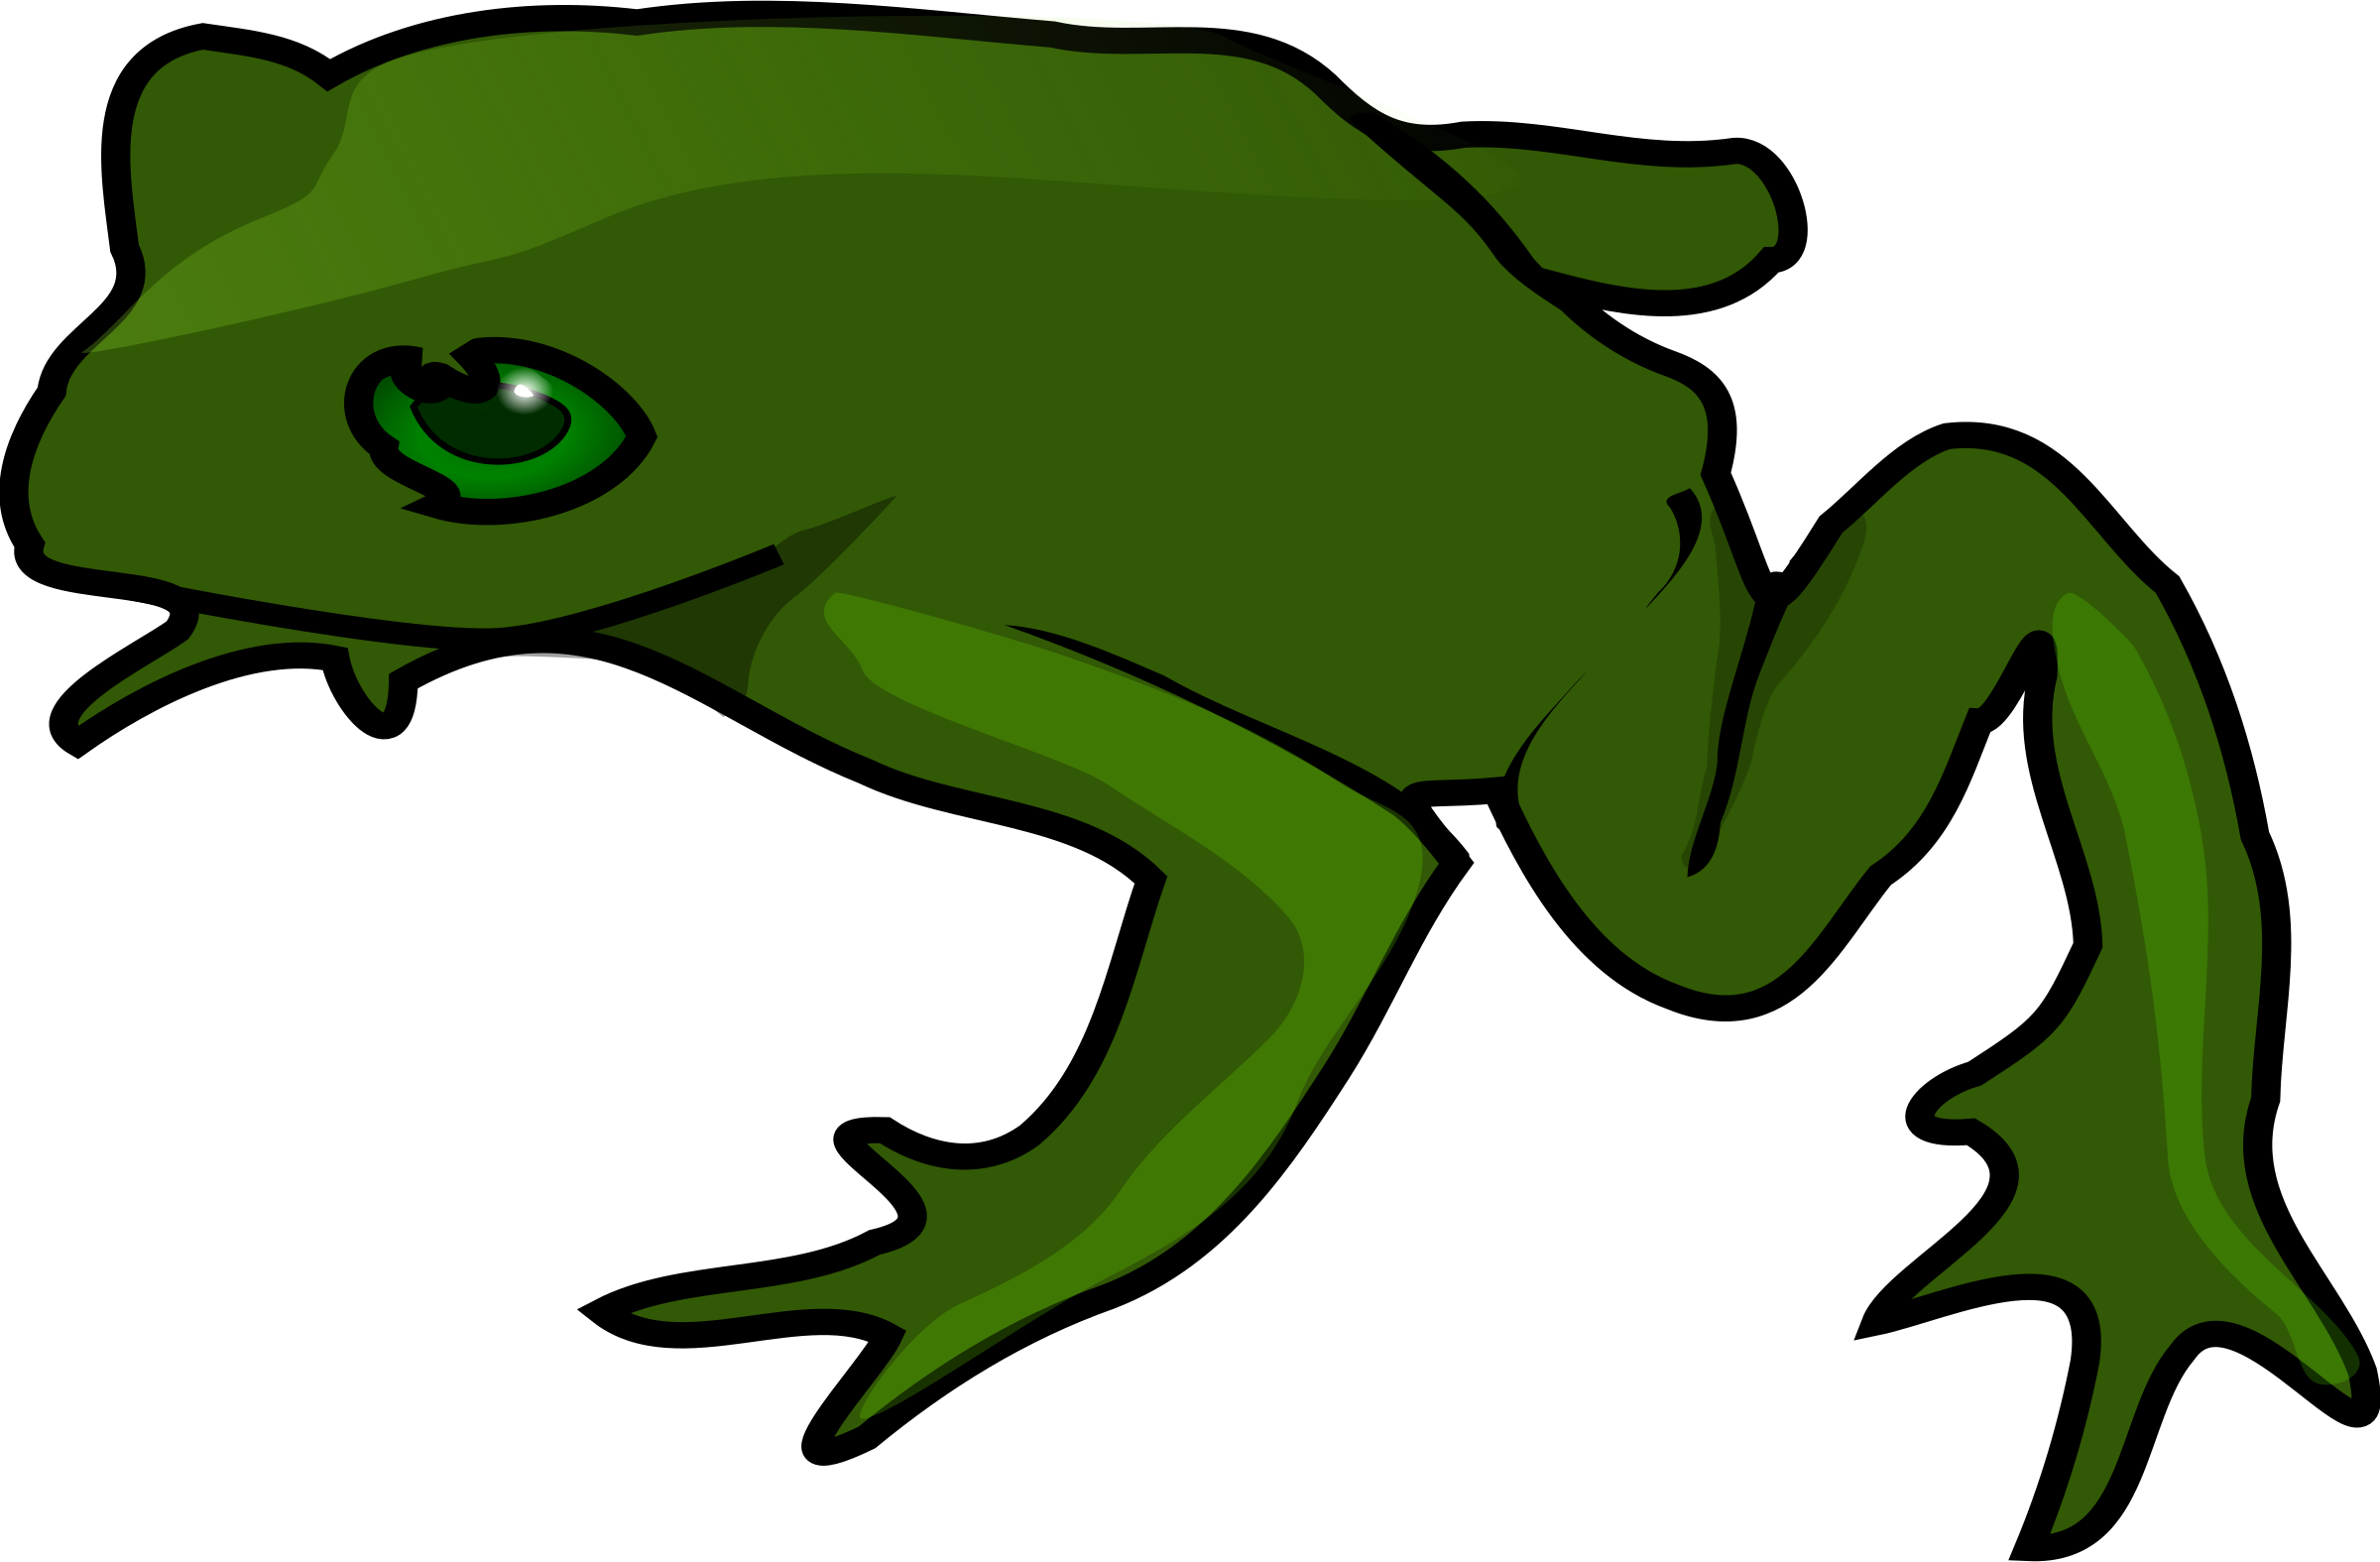 frog by TheresaKnott